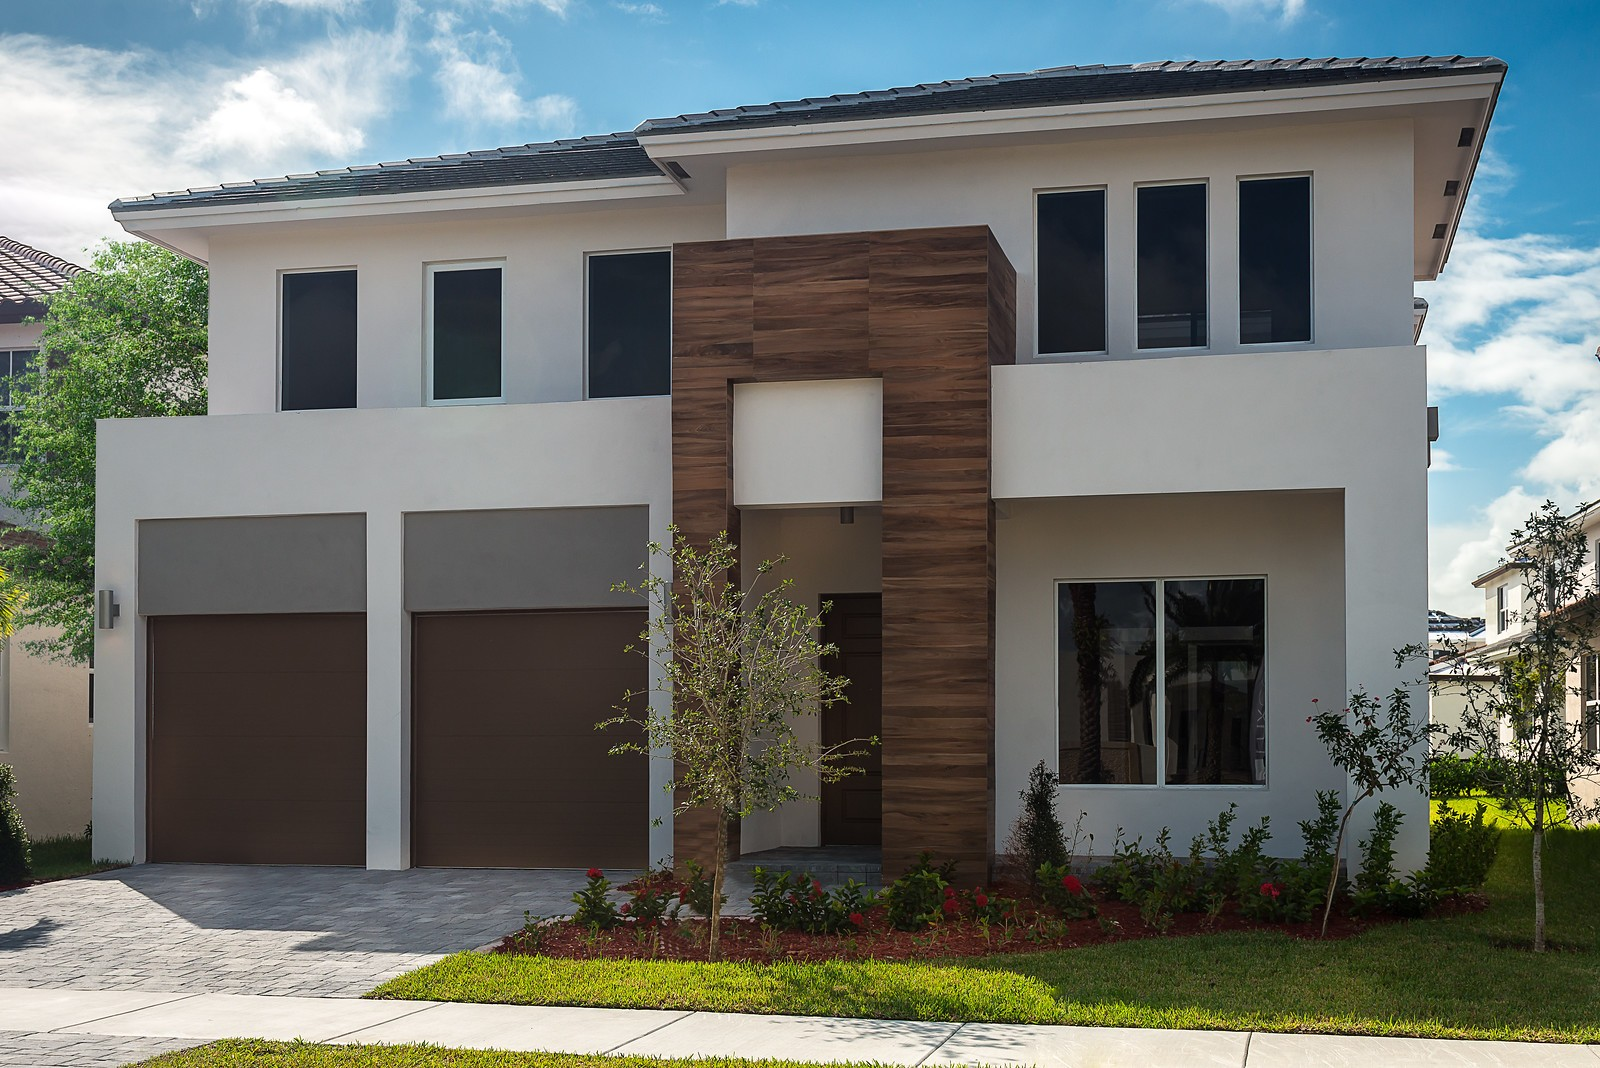 Cole 50 Plan At Mosaic At Venetian Parc In Miami Fl By Luxcom Builders